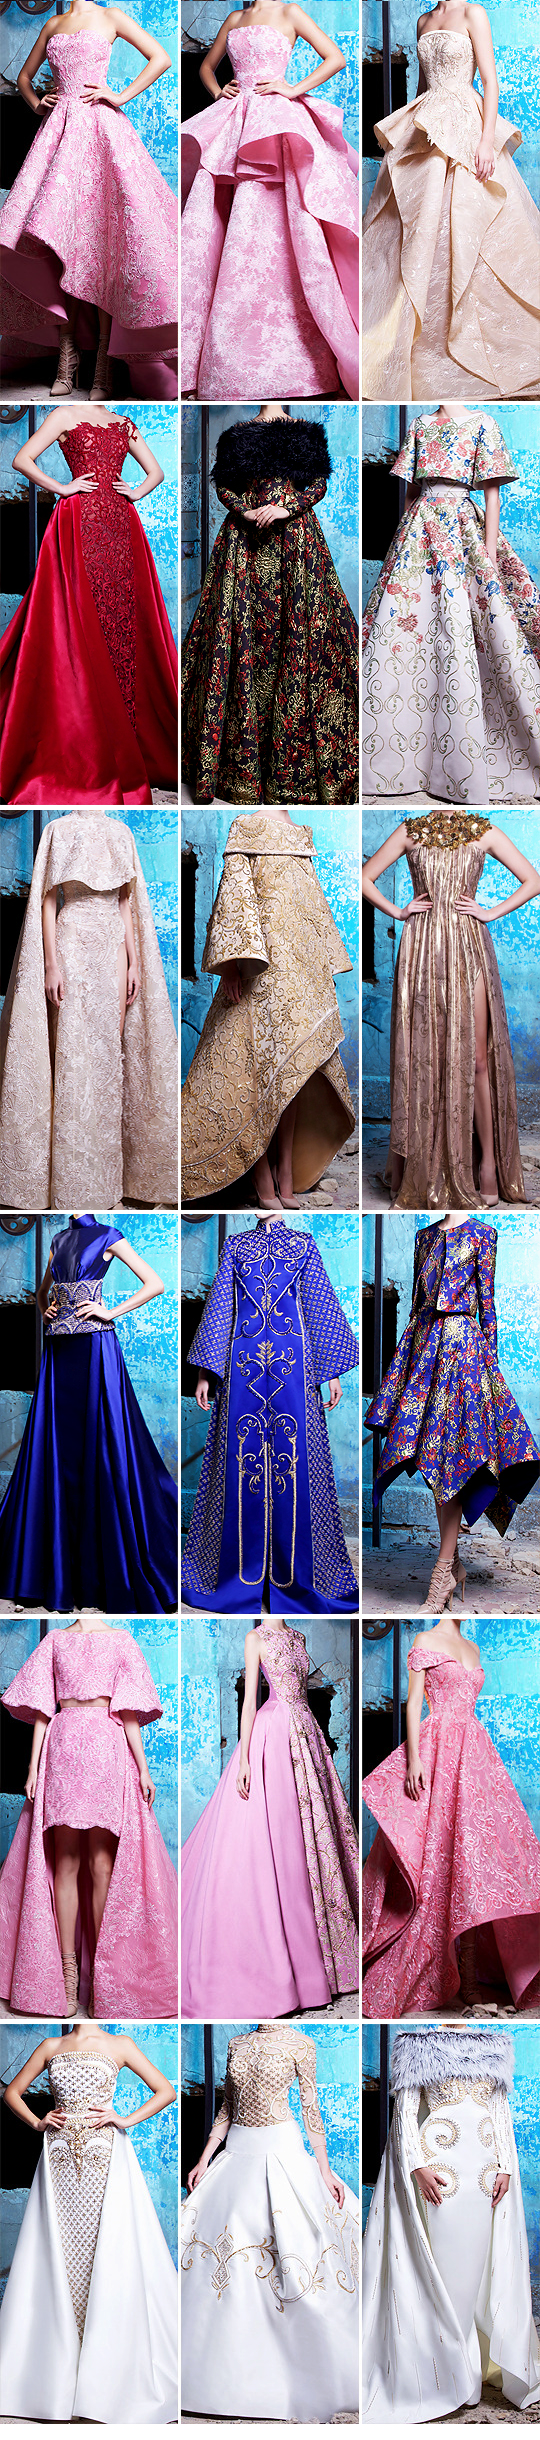 Saiid Kobeisy Couture Fall/Winter 2016-2017 Collection